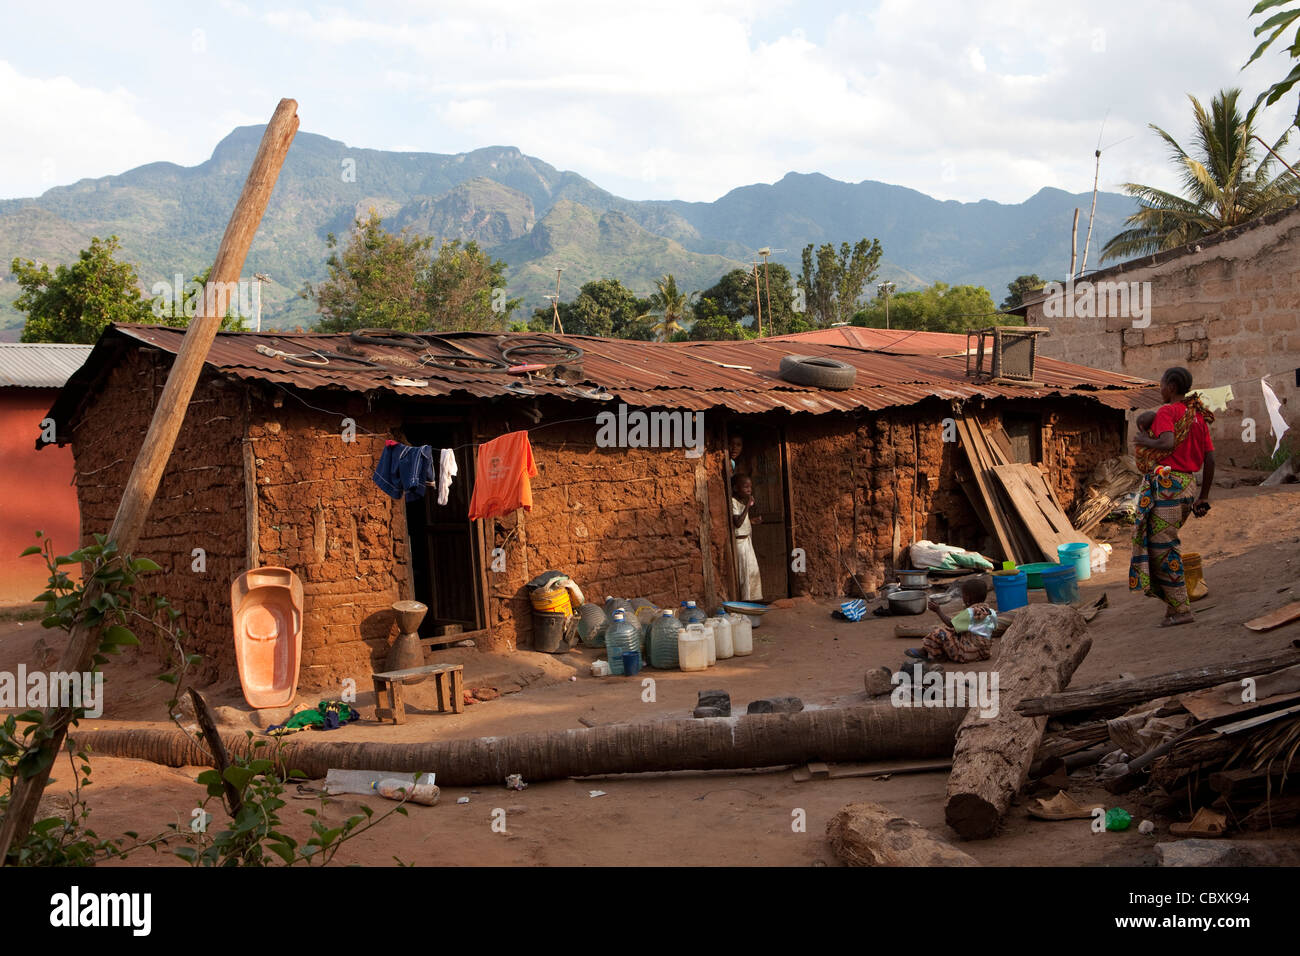 The Uluguru Mountains rise above Morogoro, Tanzania, East Africa. - Stock Image